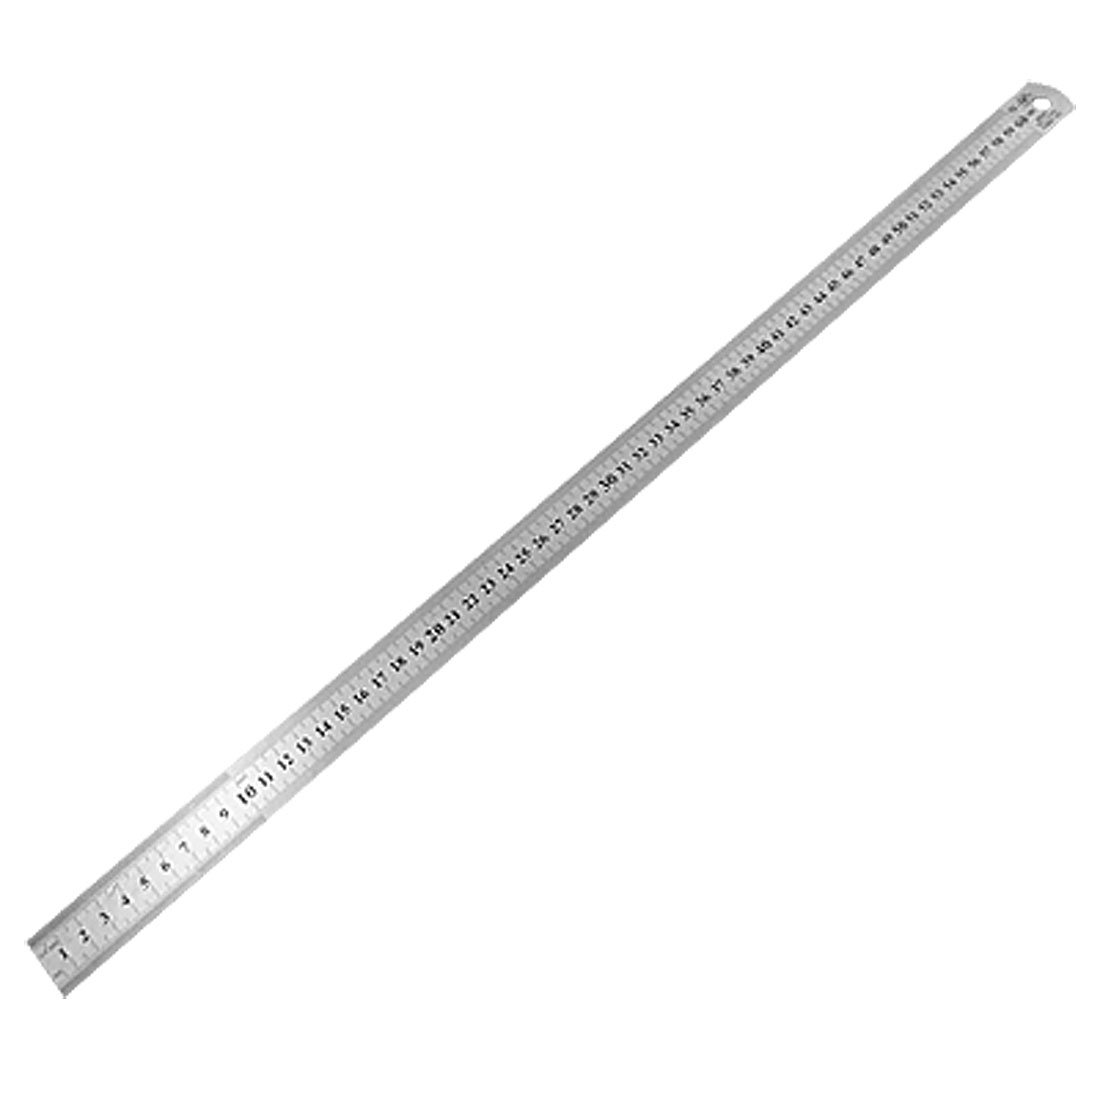 5pack 60cm Stainless Metal Measuring Straight Ruler 300mm multifunctional combination square ruler stainless steel horizontal removable square ruler angle square tools metal ruler